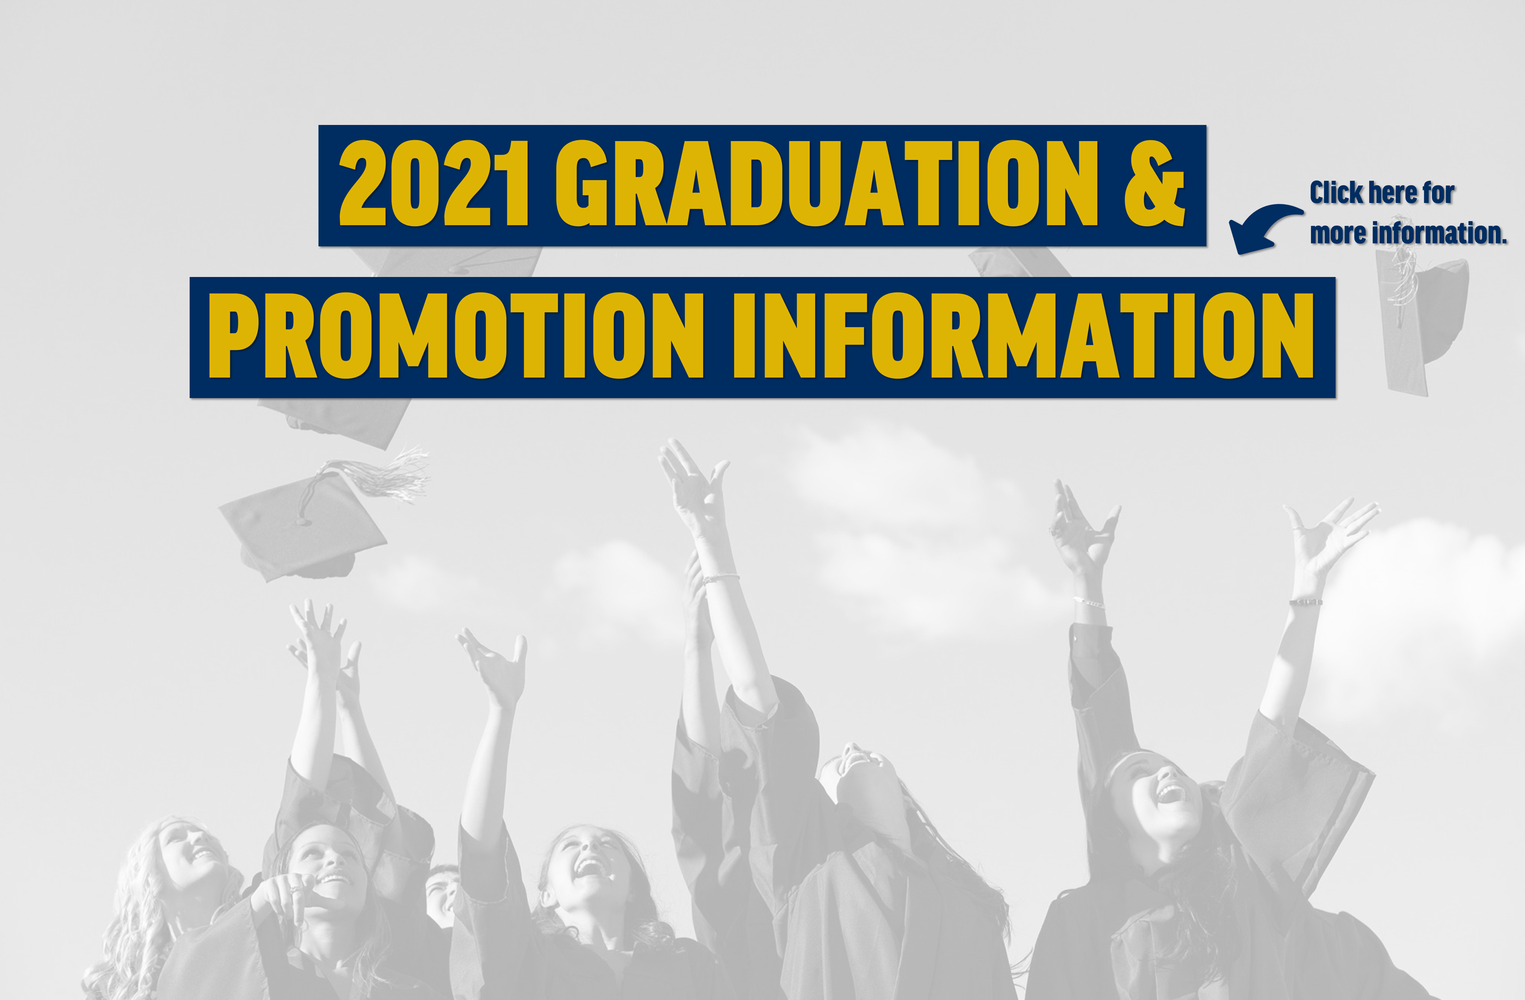 Graduation and promotion information.